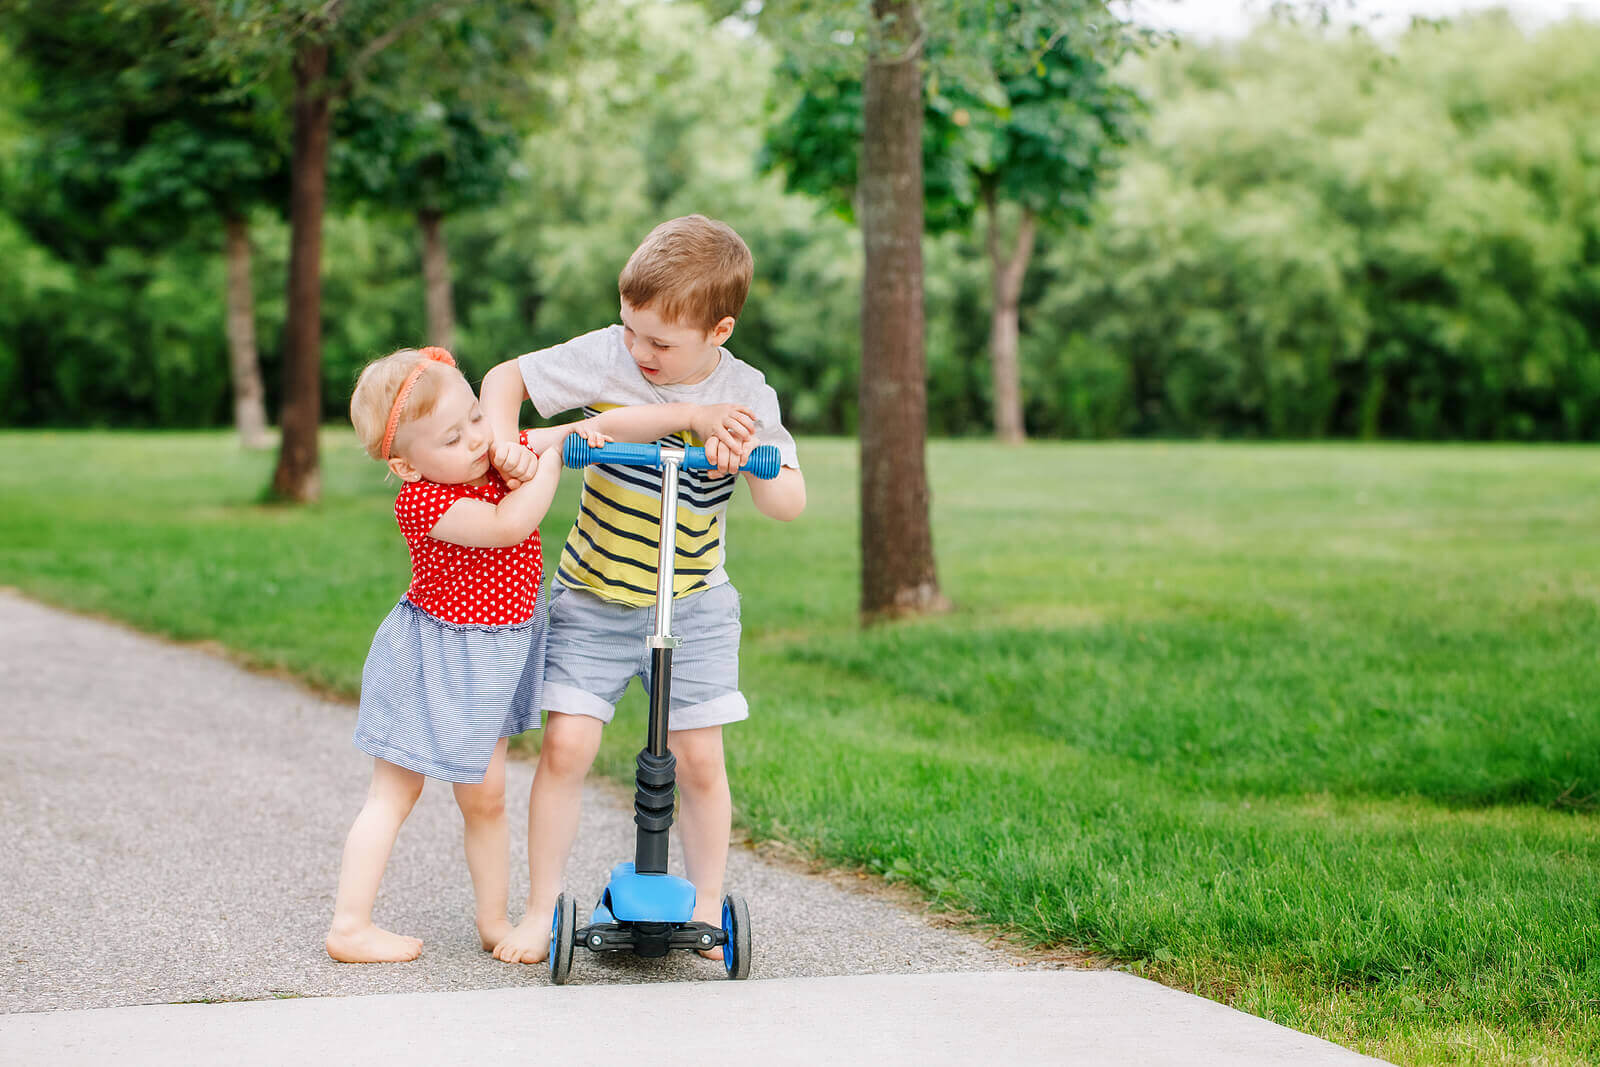 A boy and his little sister fighting over a scooter.